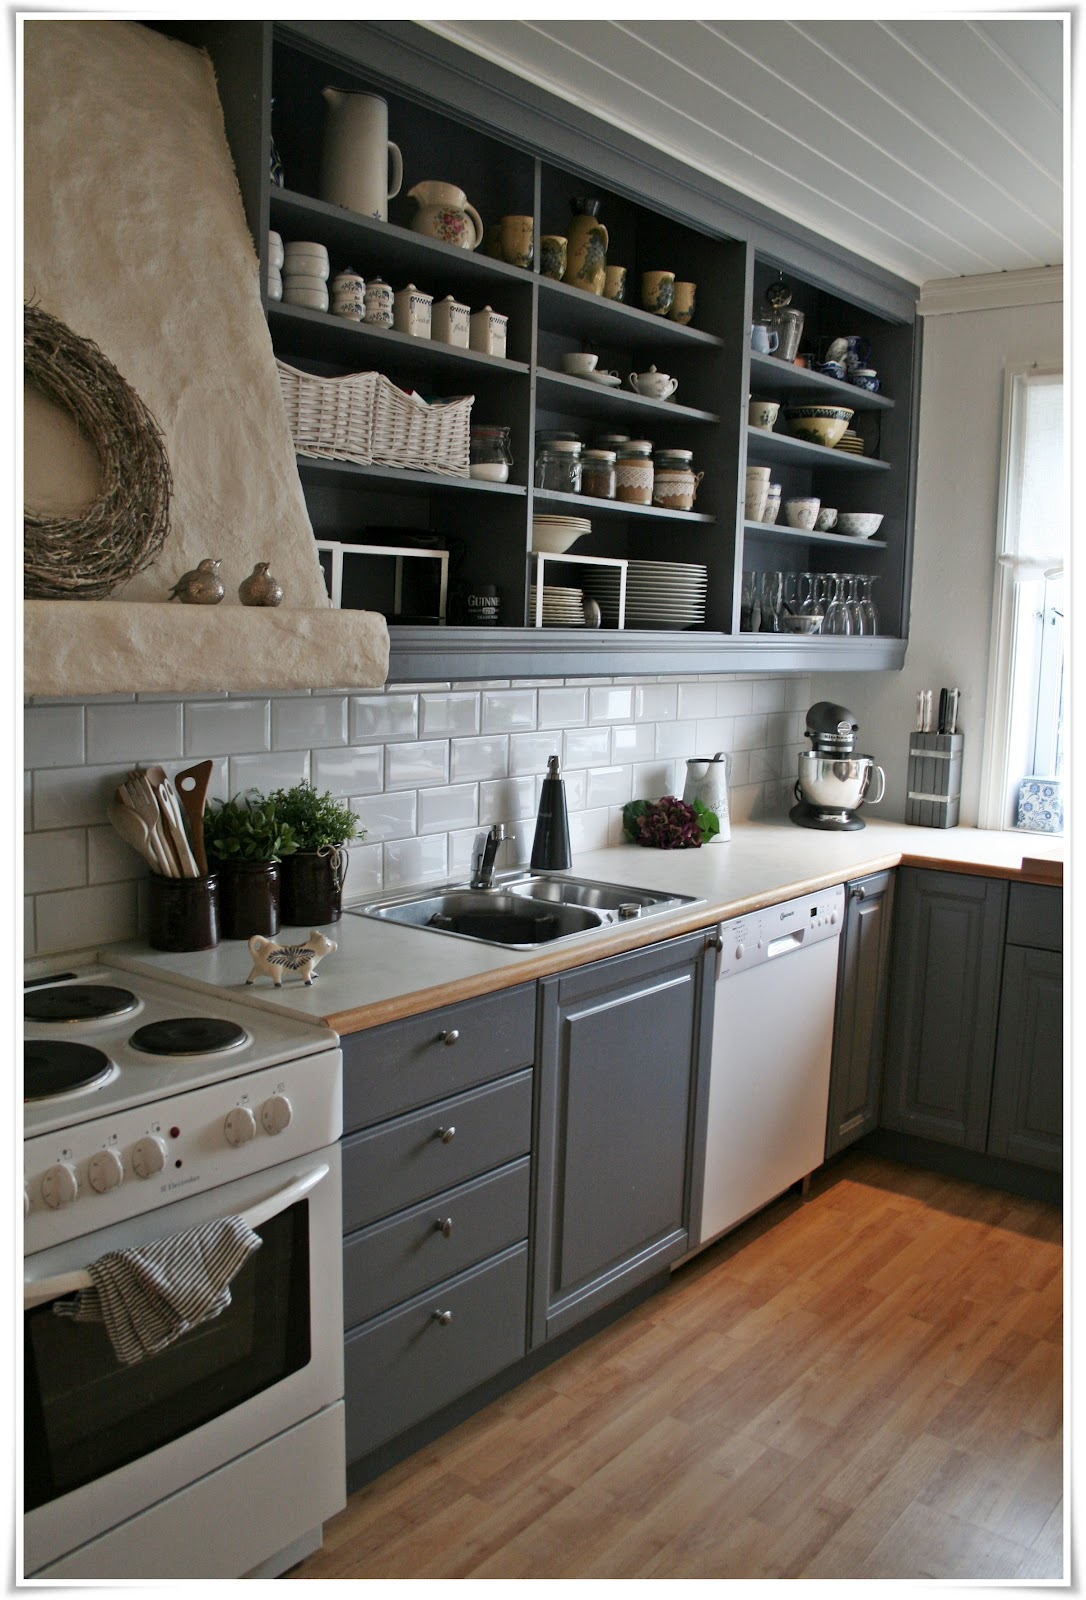 kitchen cabinets open shelves 26 kitchen open shelves ideas decoholic 20922